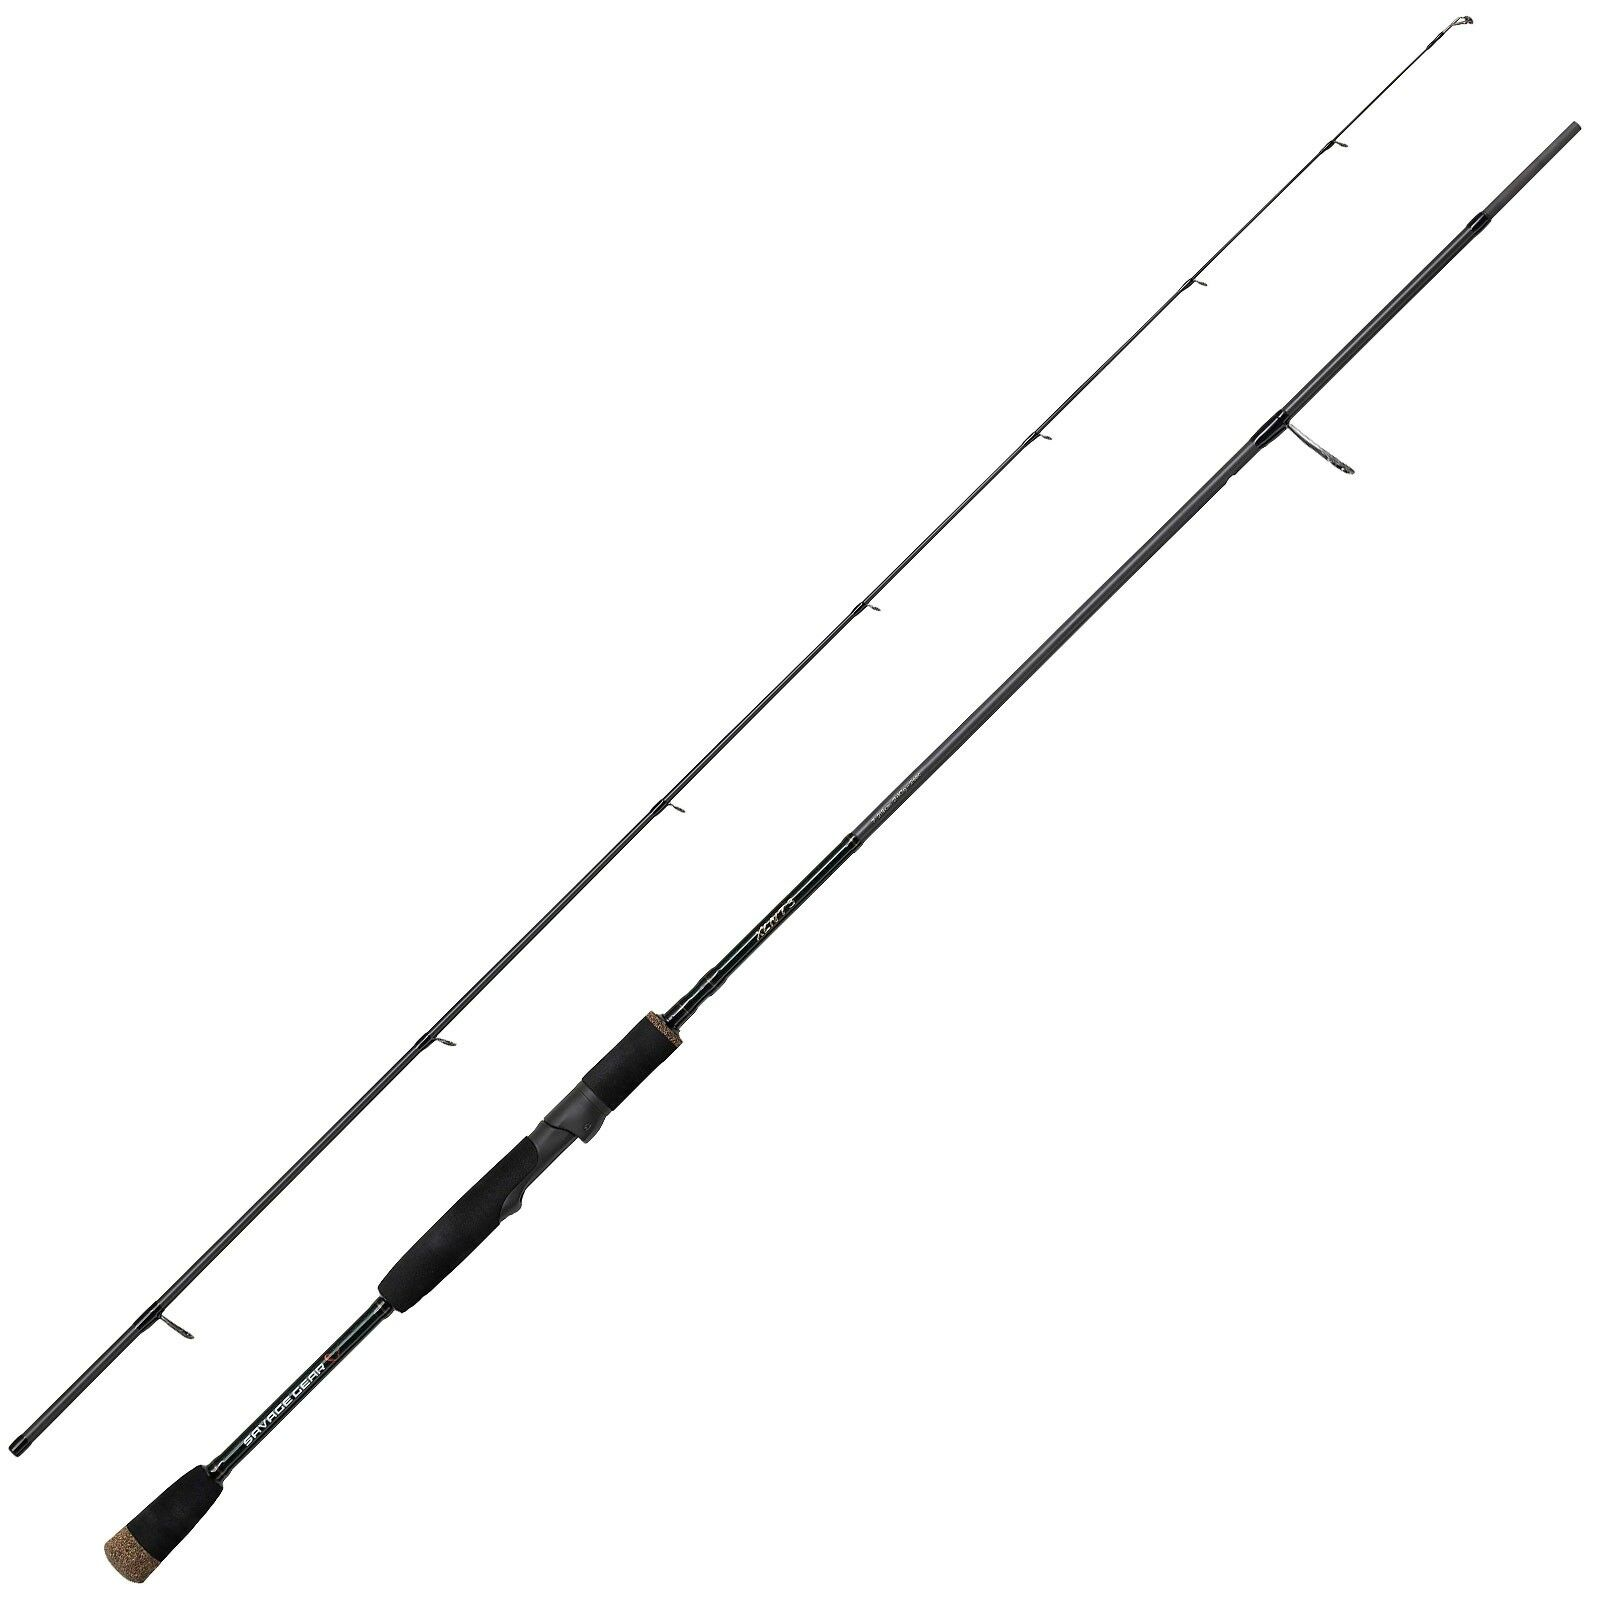 Savage gear caña pesca Cañas Spinning Rod - XLNT3 7 ft 2-parte 2, 13 m 2-10g